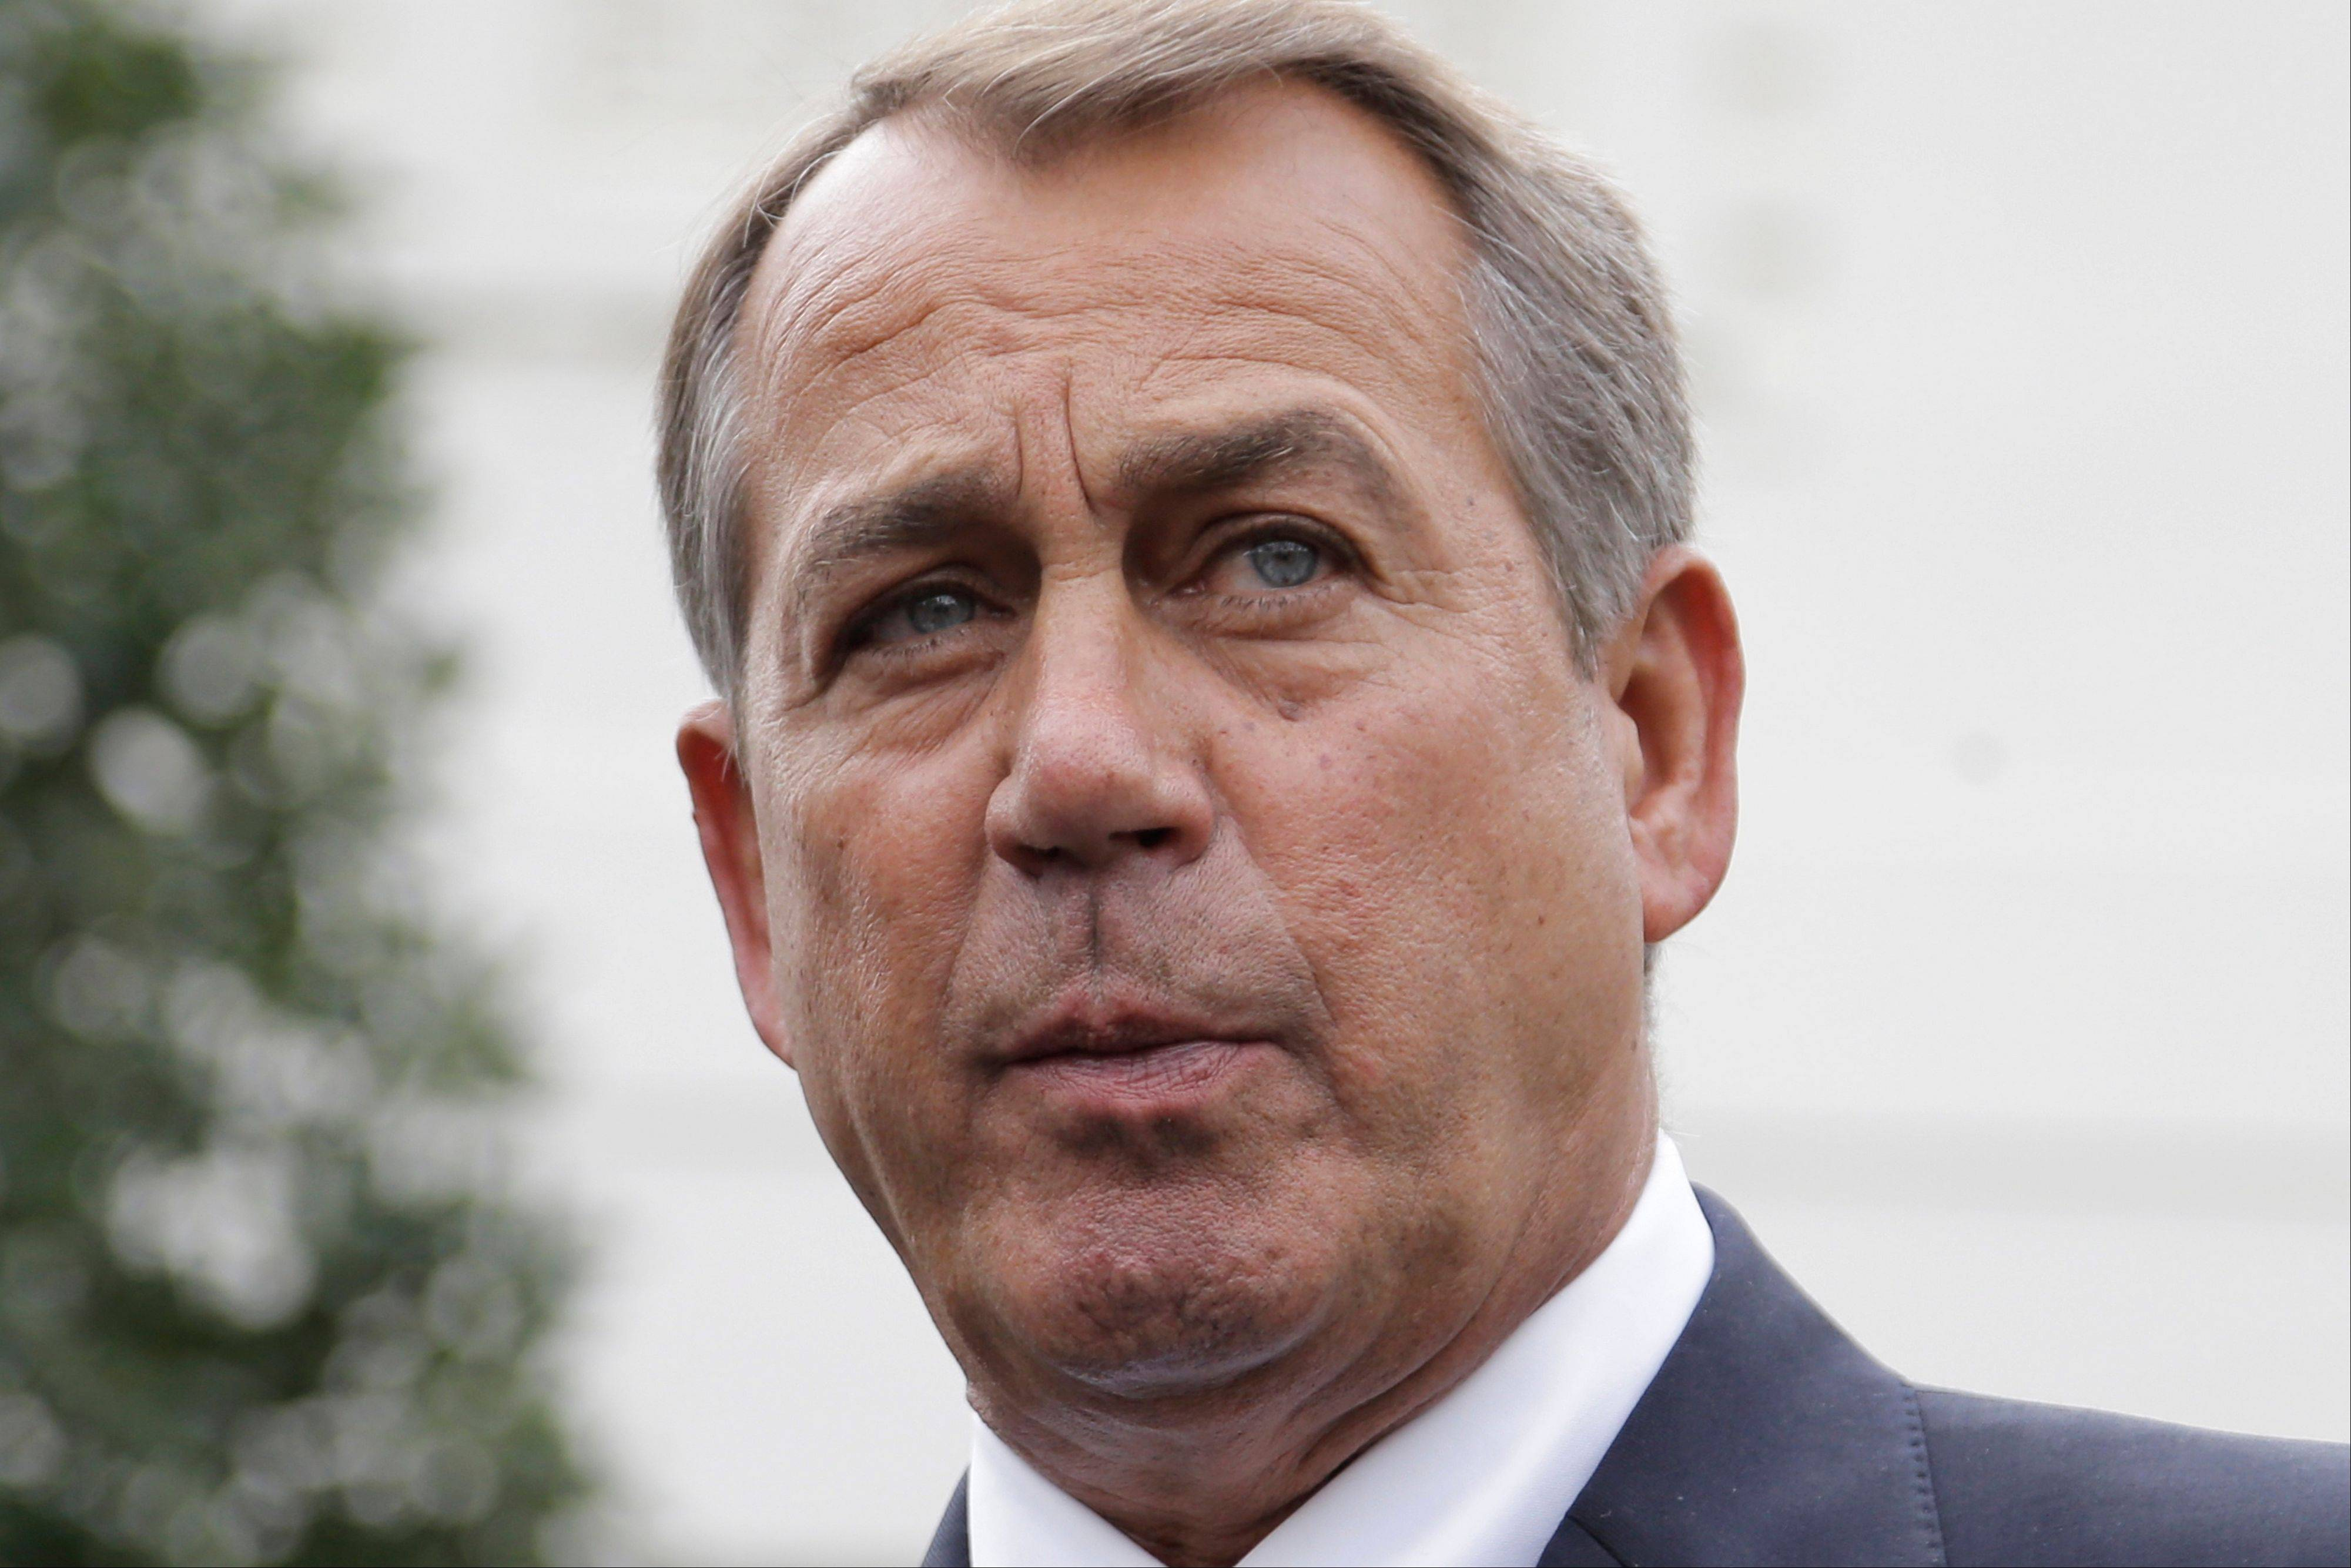 House Speaker John Boehner of Ohio speaks to reporters outside the White House in Washington, Friday, following a meeting with President Barack Obama and Congressional leaders regarding the automatic spending cuts.